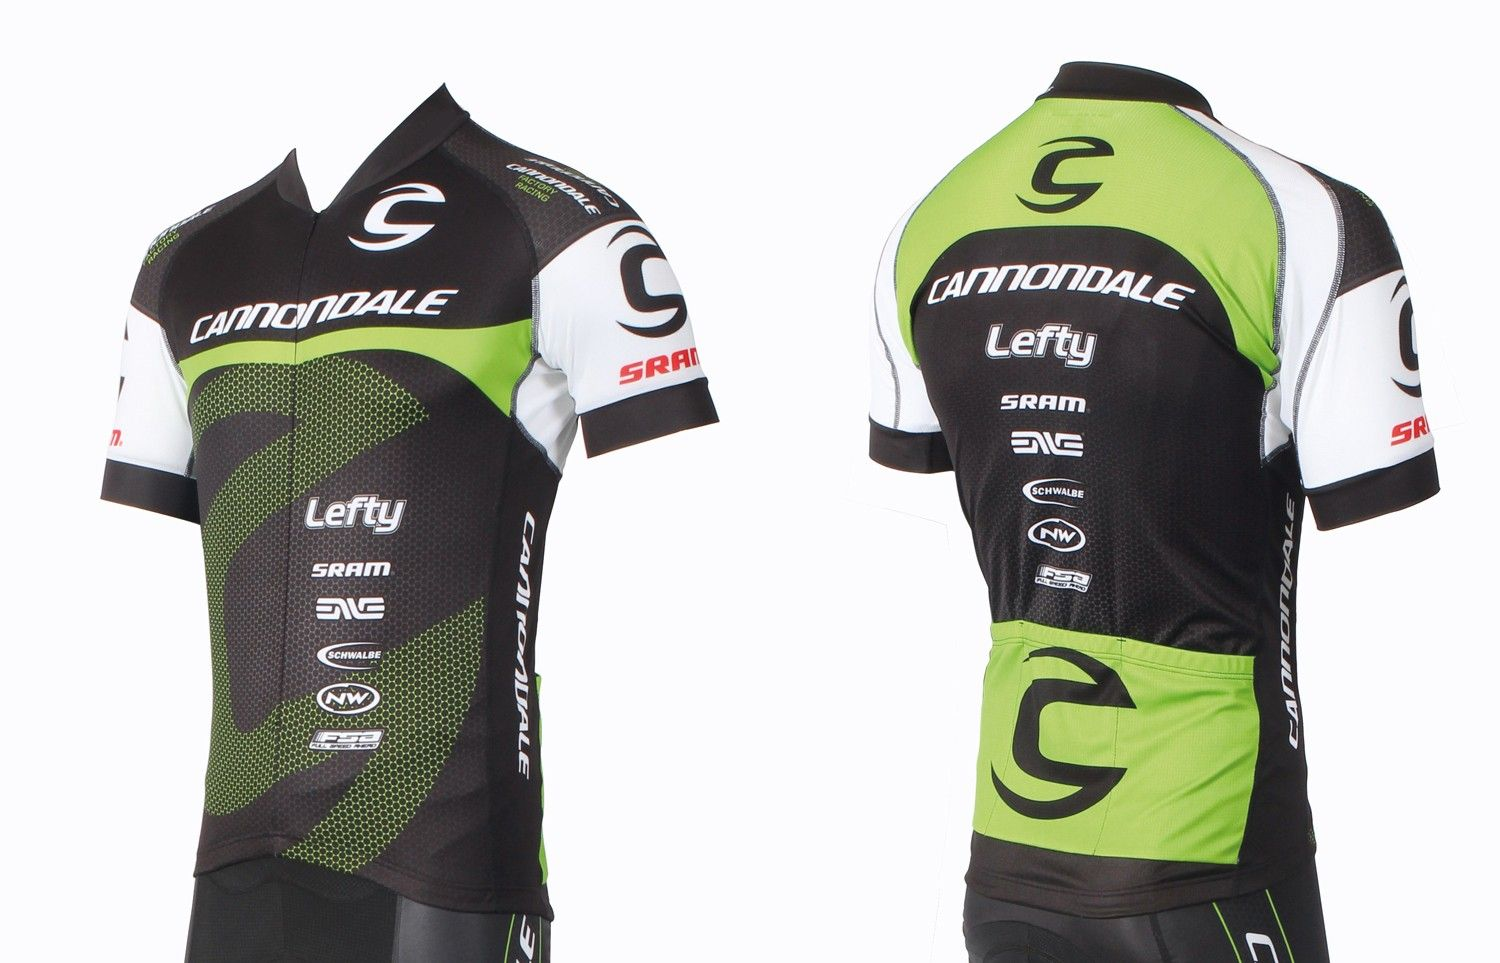 Maillot Cannondale Factory Racing CFR MC - L